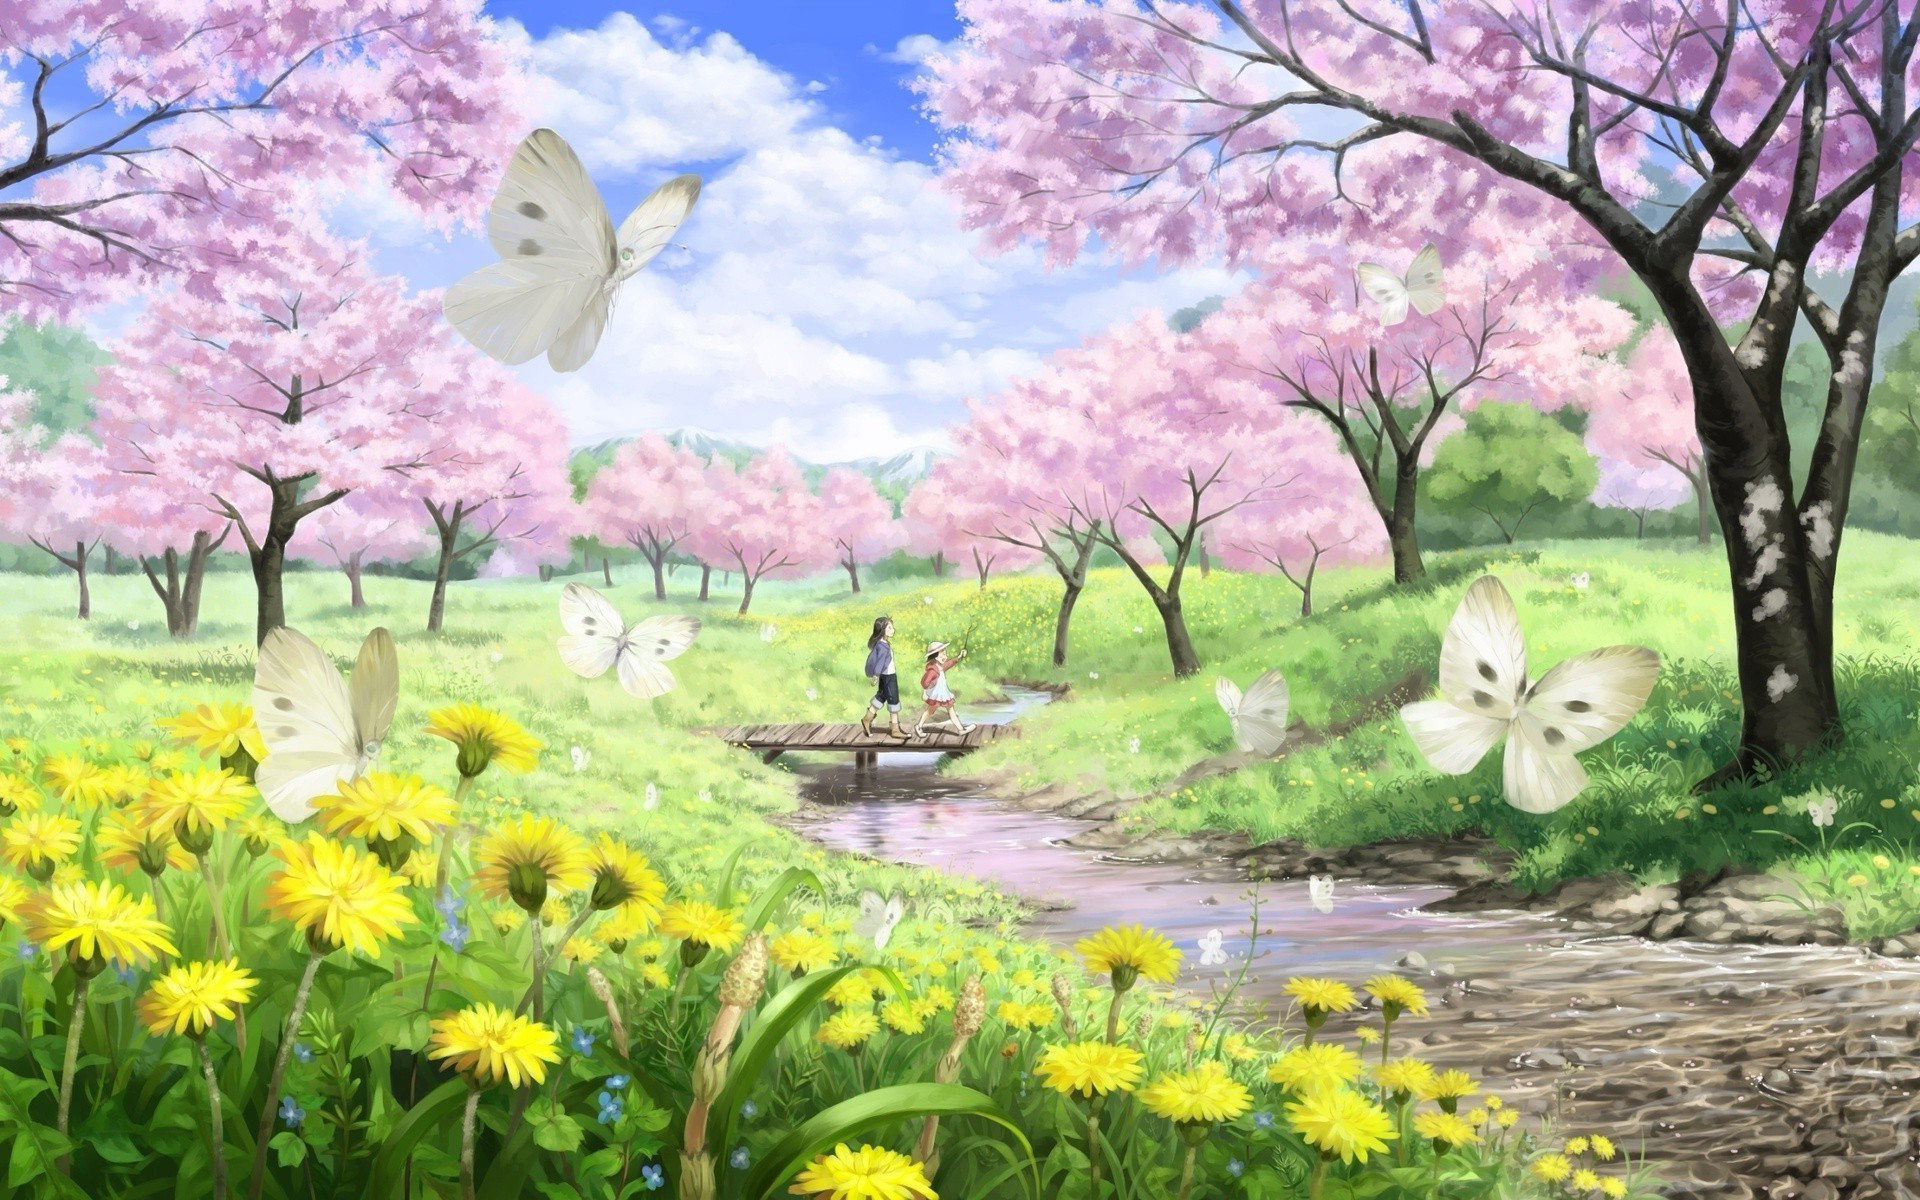 1920x1200 Spring nature desktop wallpaper wallpaper hd new.